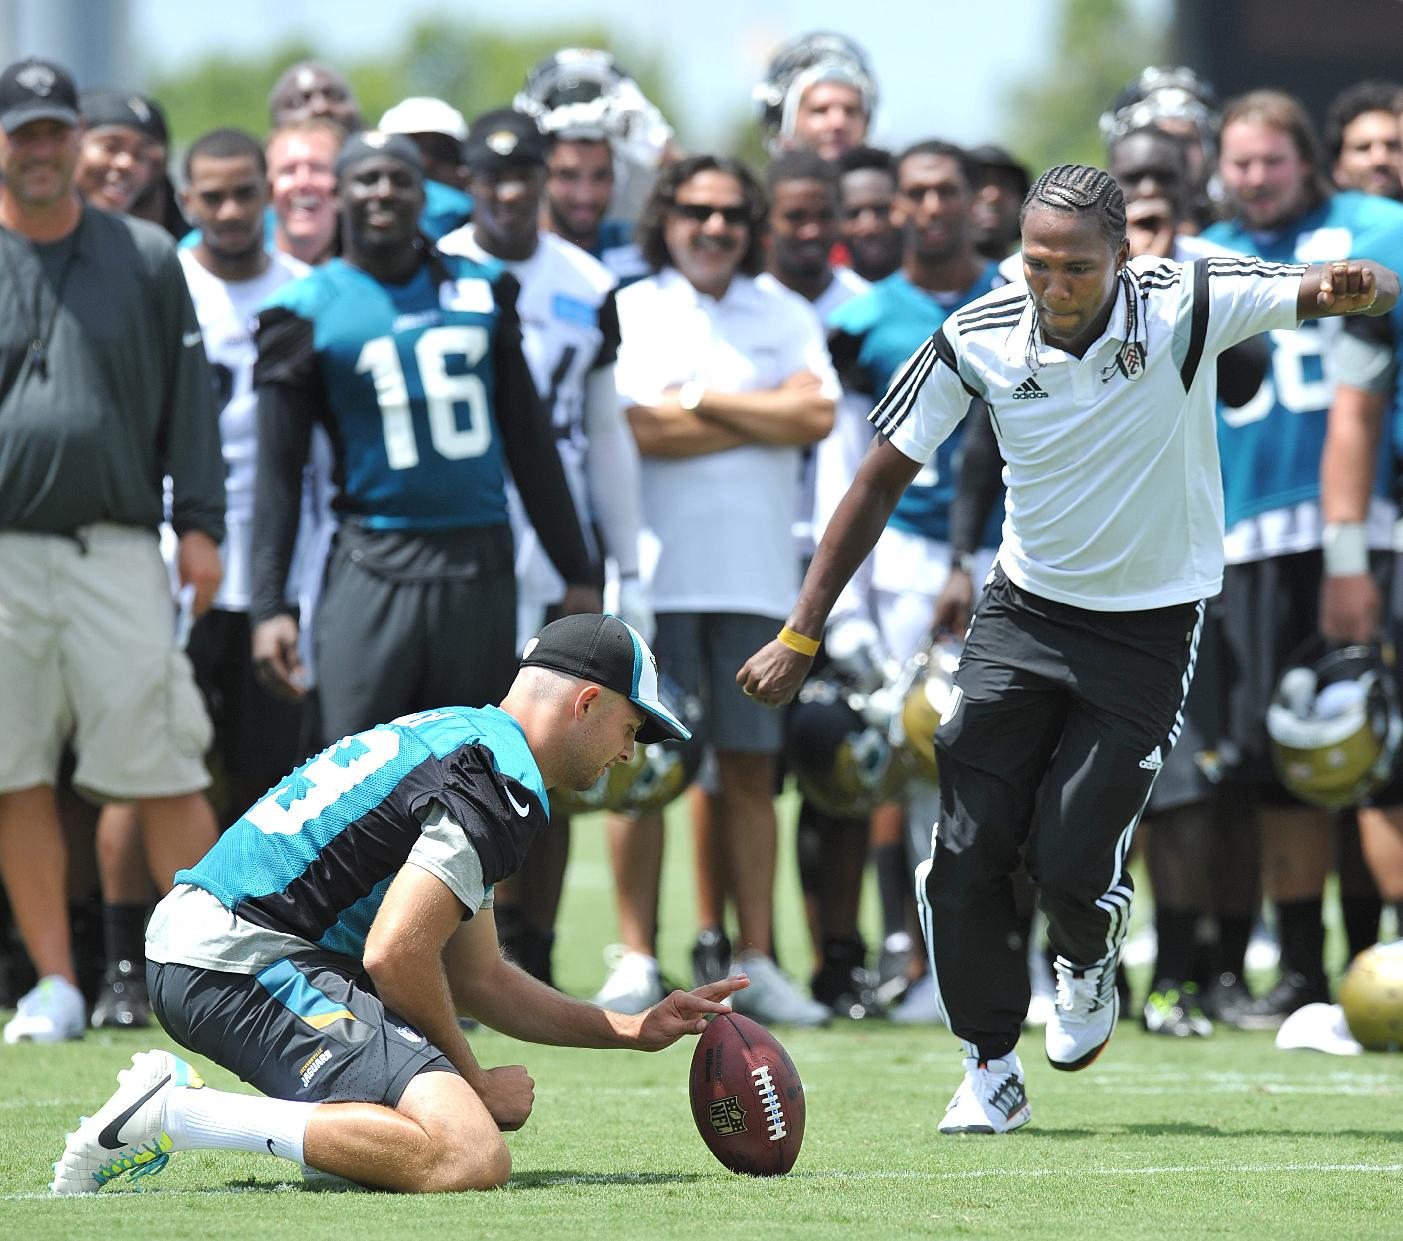 Jacksonville Jaguars' punter Bryan Anger, left, holds the ball as Hugo Rodallega, of the Fulham Football Club, kicks a field goal after the NFL team's football training camp, on Friday, July 25, 2014, in Jacksonville, Fla